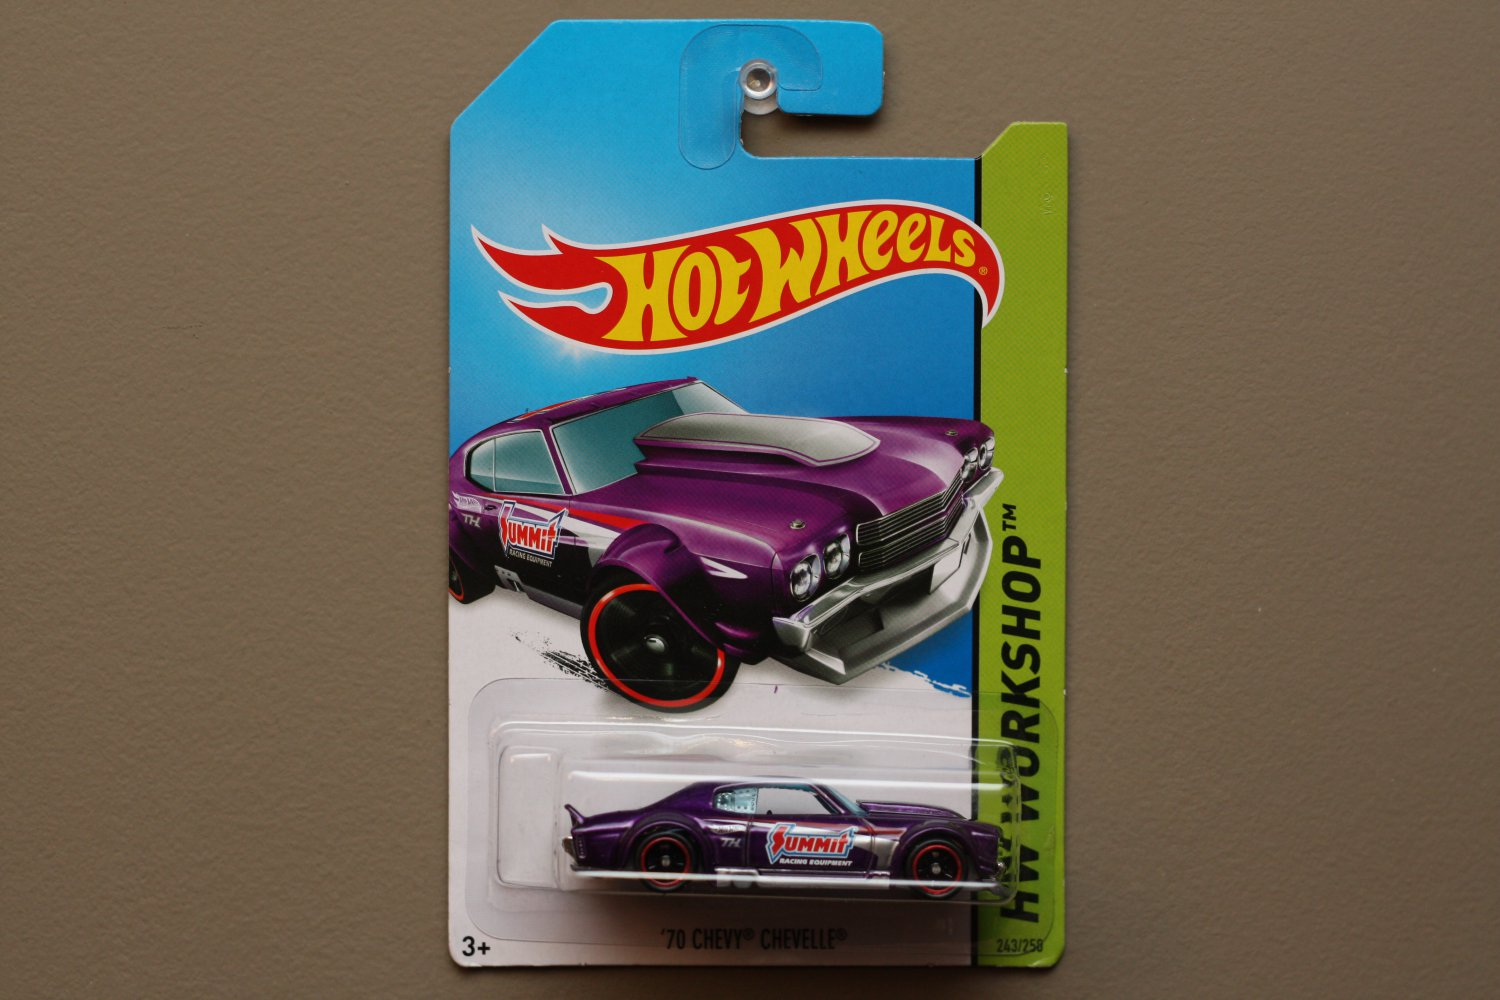 Hot Wheels 2014 HW Workshop '70 Chevy Chevelle (spectraflame purple) (Super Treasure Hunt)